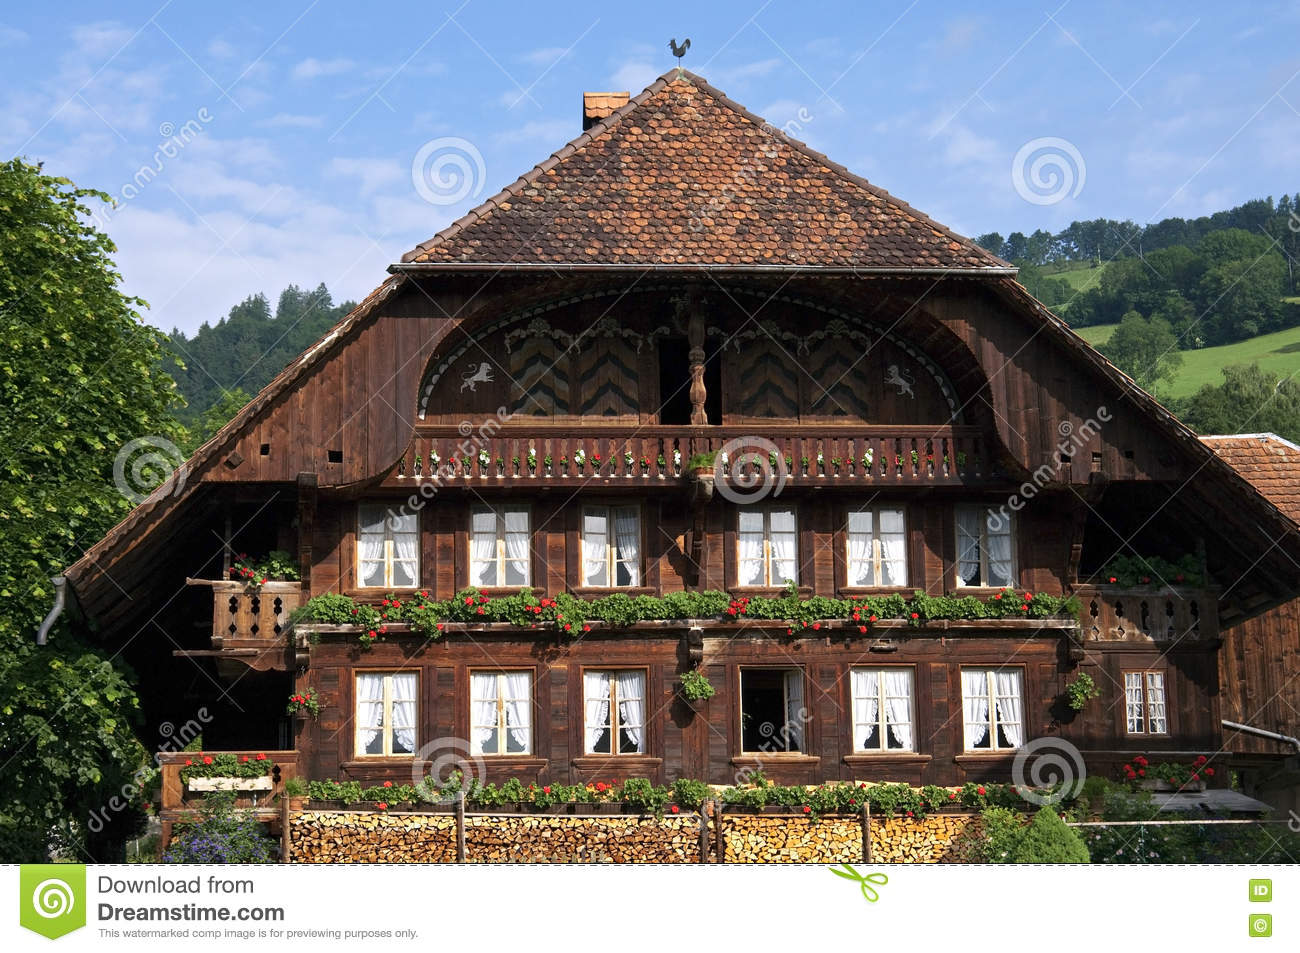 Swiss Mountain House typical swiss farm house stock photos, images, & pictures - 93 images